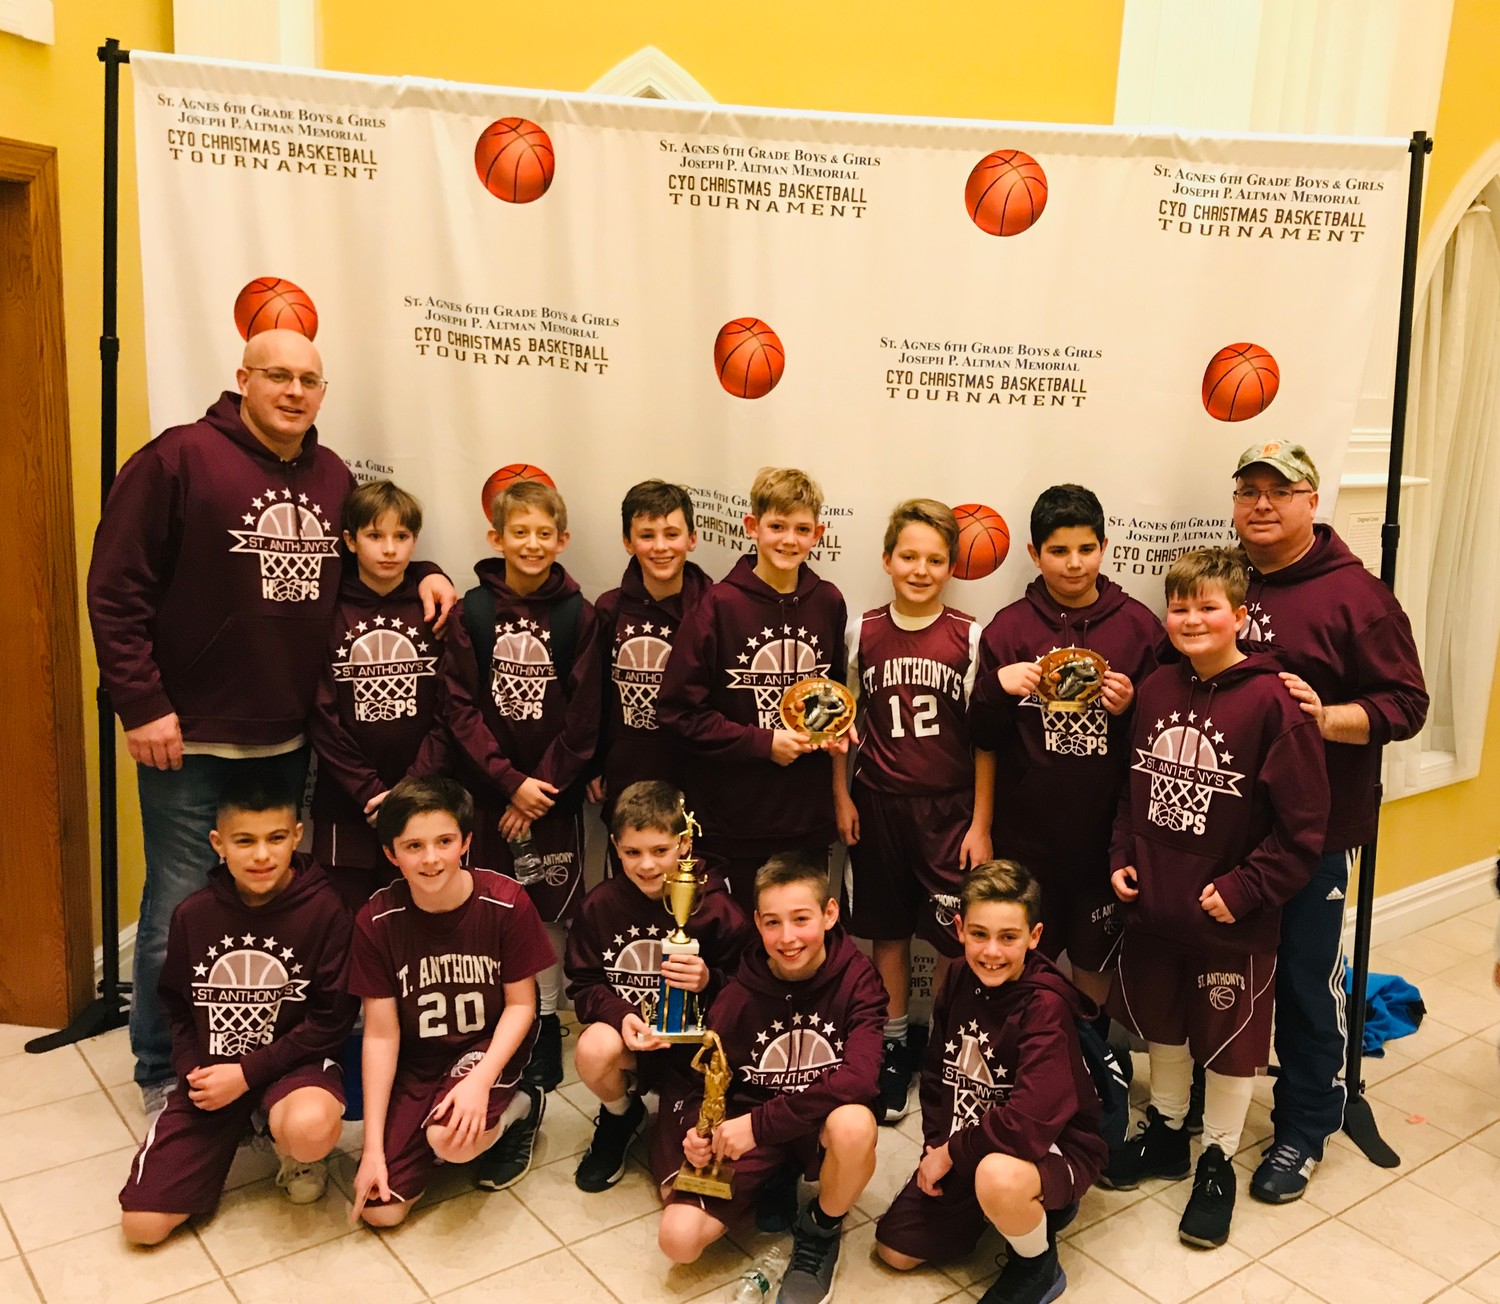 Under the direction of coach Frank Wassenbergh, back left, and assistant coach John Hunt, back right, the Oceanside CYO basketball team won the annual St. Agnes Christmas tournament last month. Above, from back row left, Sean Hunt, Justin Beckerman, Keaton Levine, Dylan Wassenbergh Jack Luttrell, Matt Monfiletto and Will Purrman along with, from front row left, Robert Wallace, Declan Costello, Matt Laudicina, Owen Joyce and Luca Nagrowski after the victory.